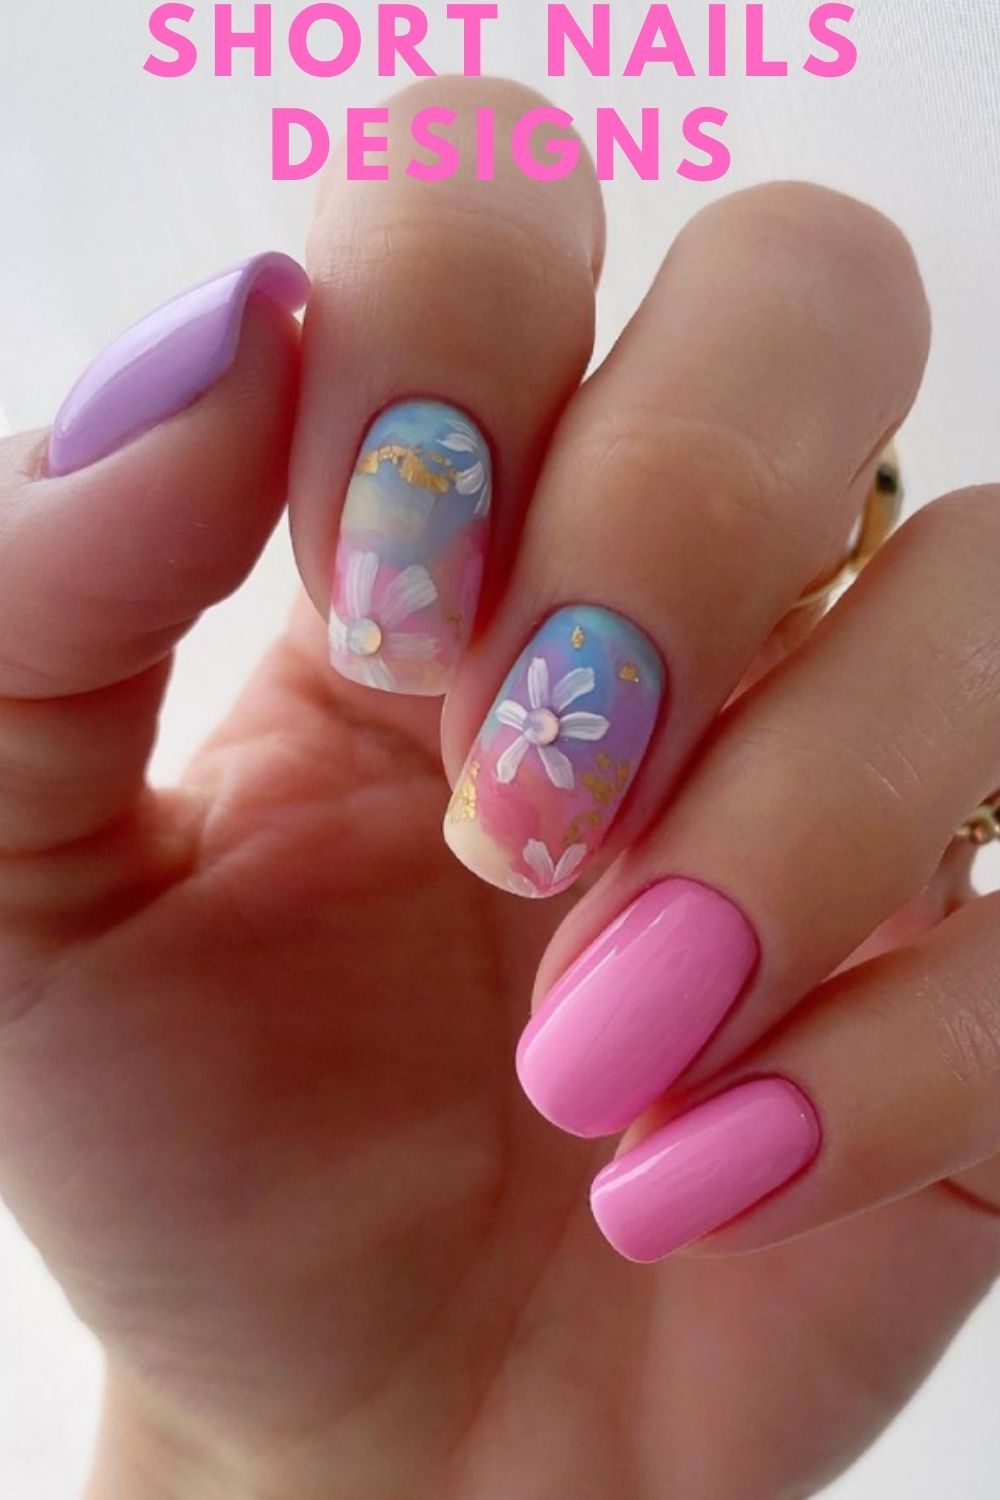 Paide nails designs